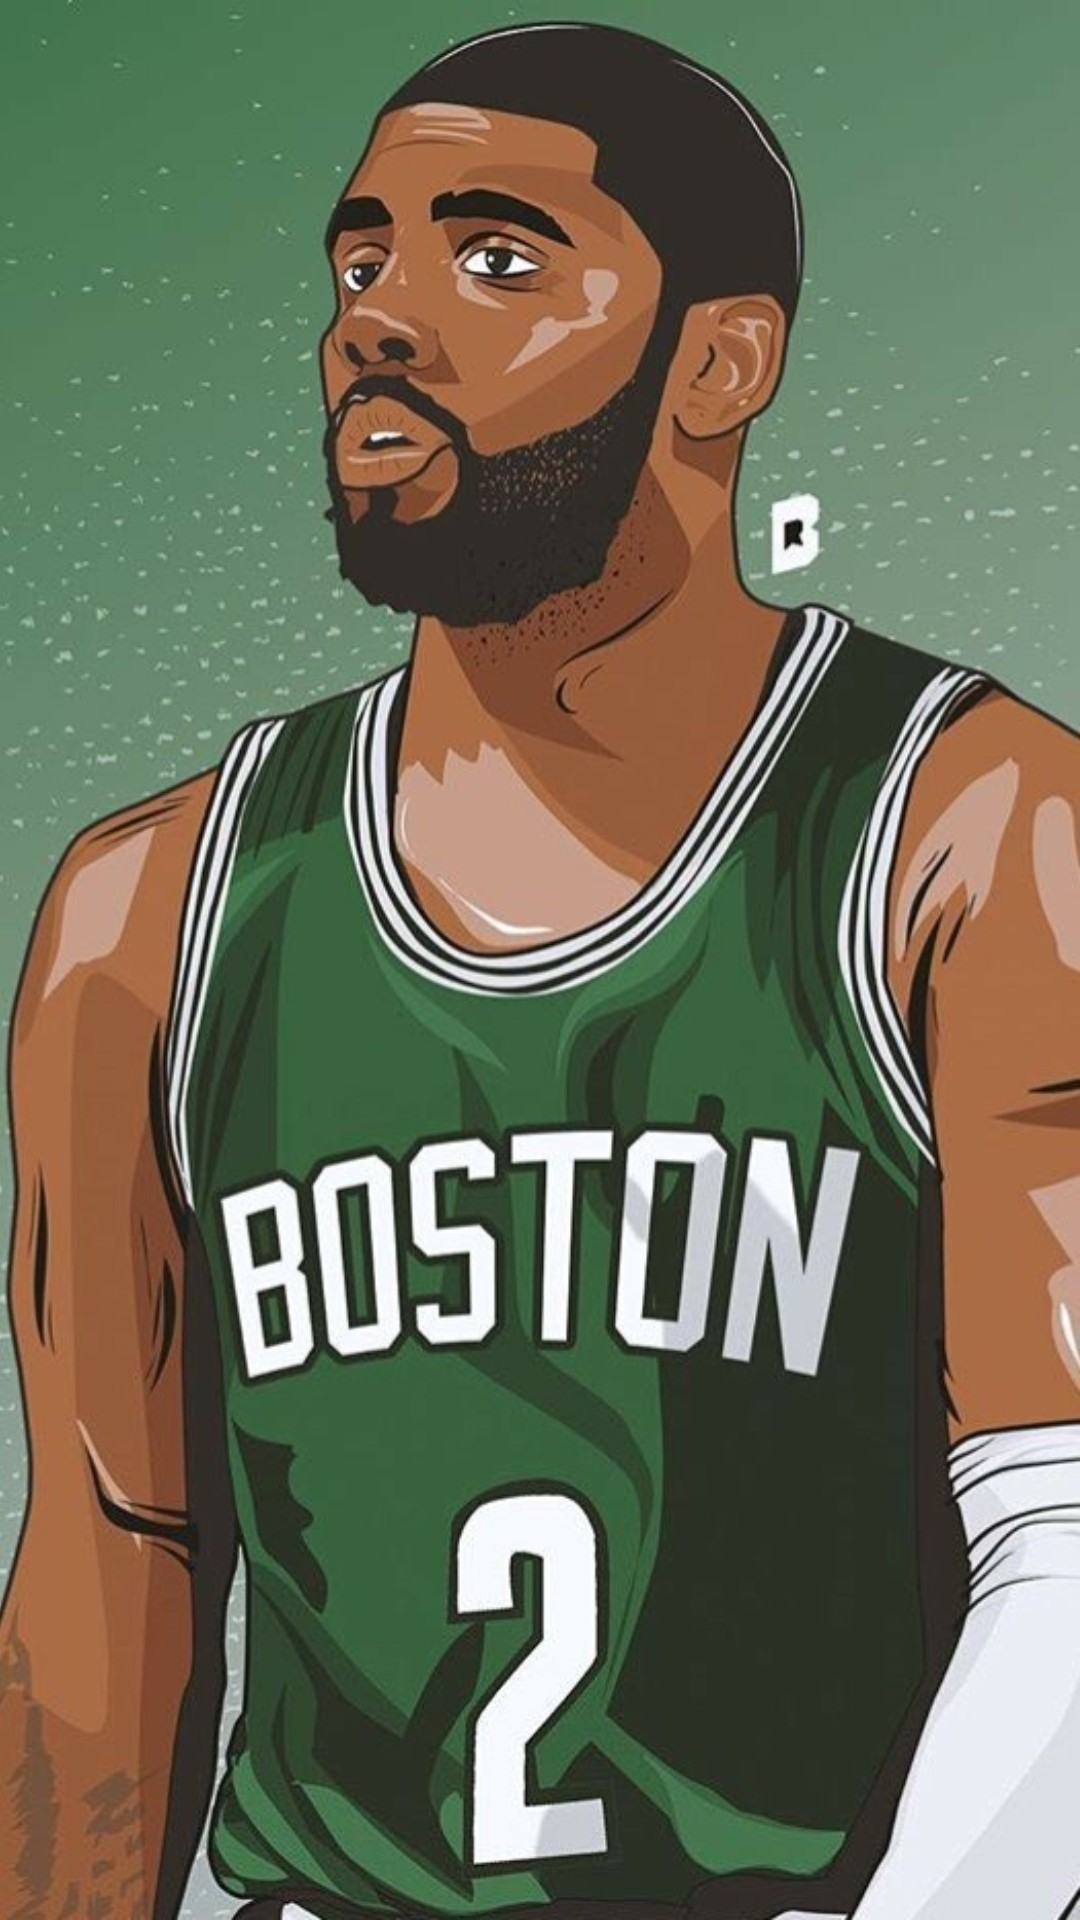 Red Sox Wallpaper Iphone X Boston Celtics Iphone Wallpaper 66 Images